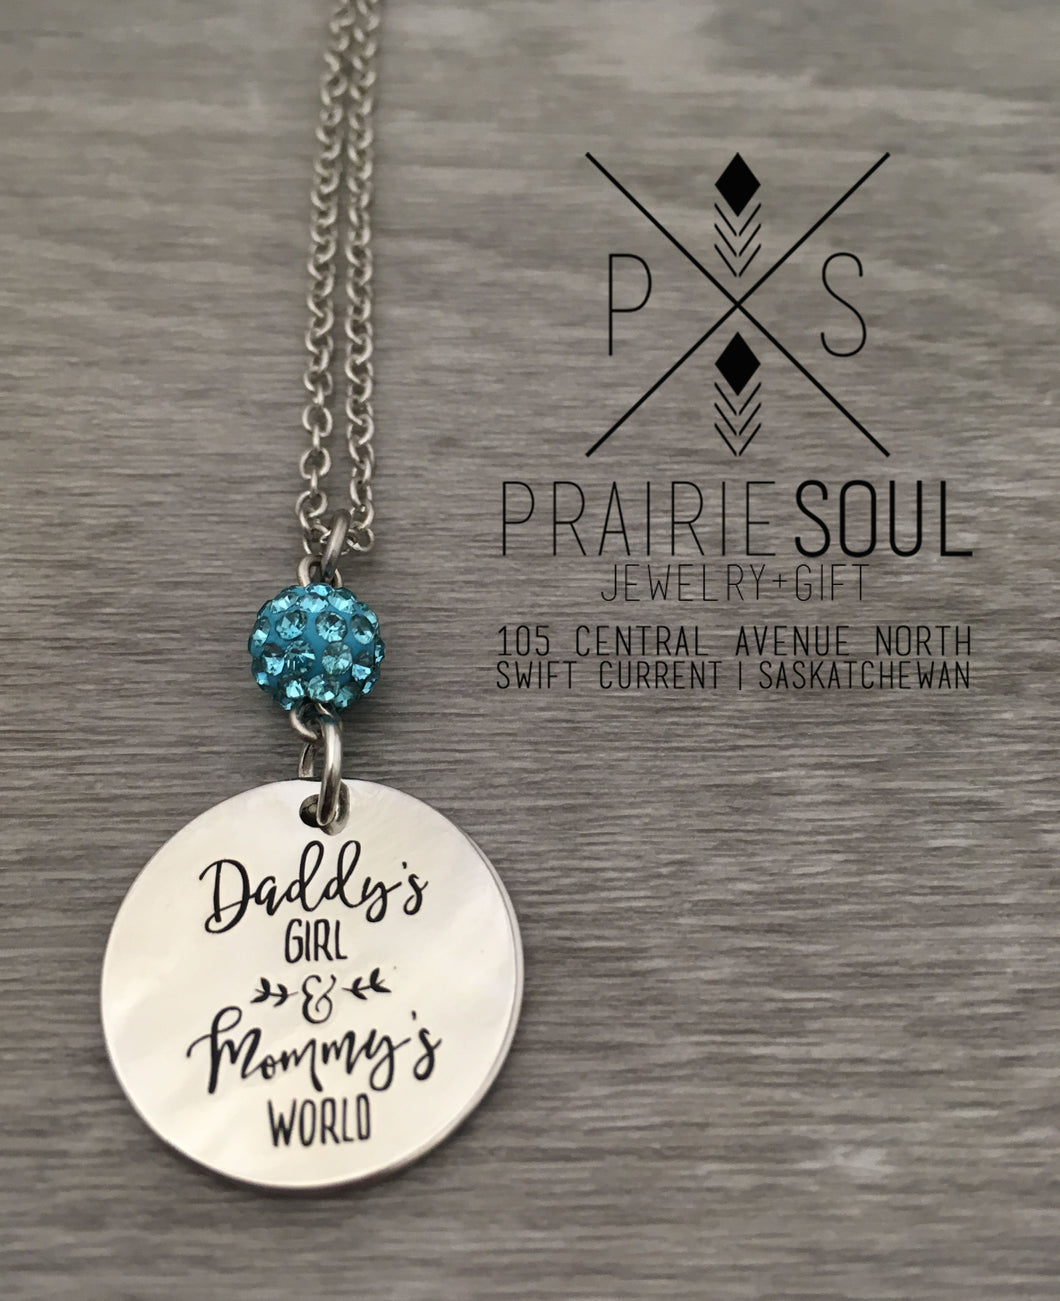 Daddy's Girl & Mommy's World Necklace